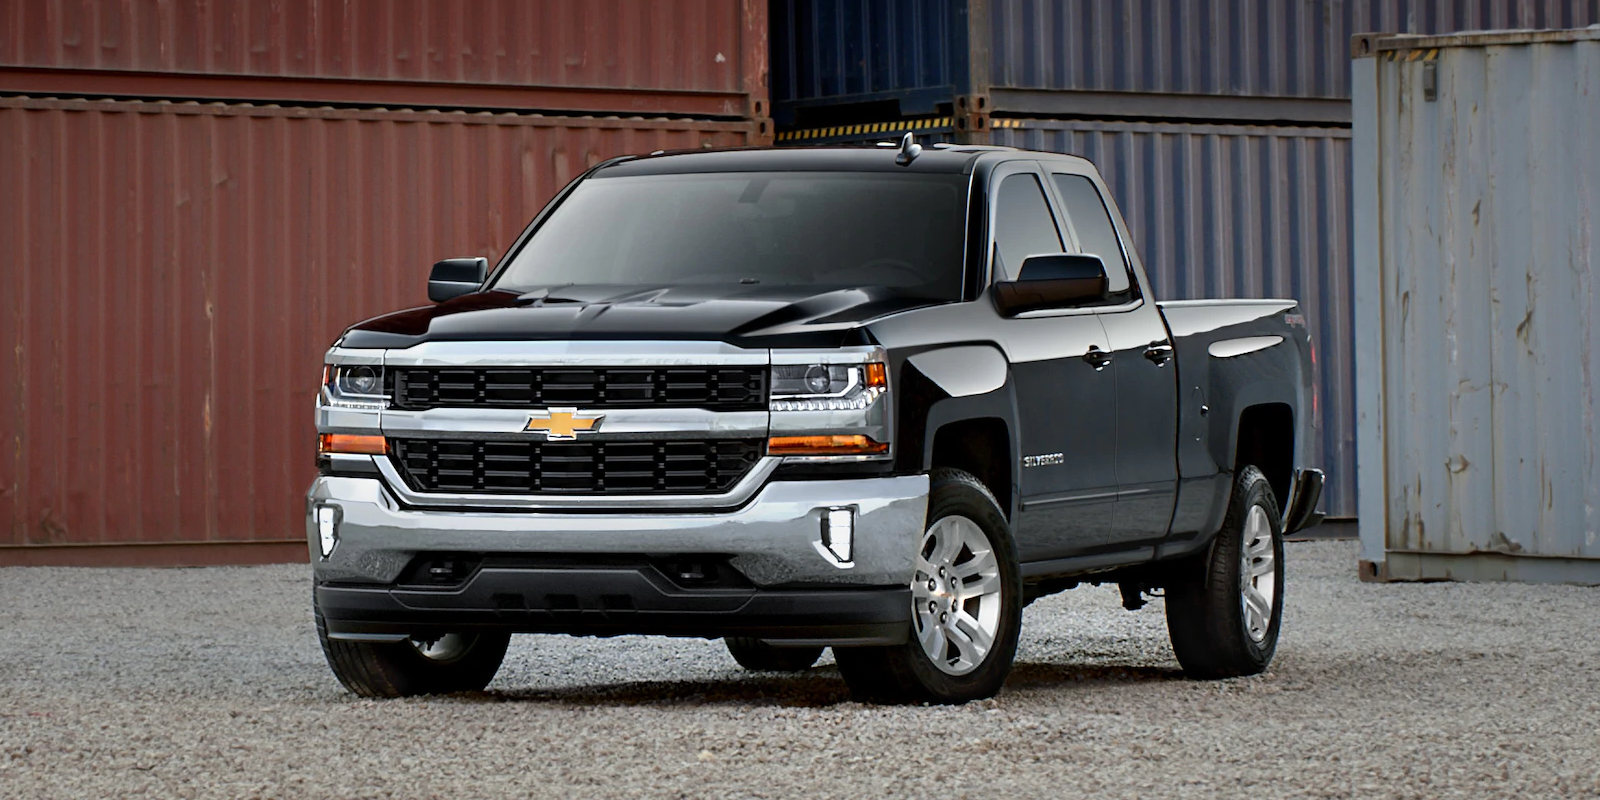 2019 Chevrolet Silverado 1500 Front Black Exterior Picture.png